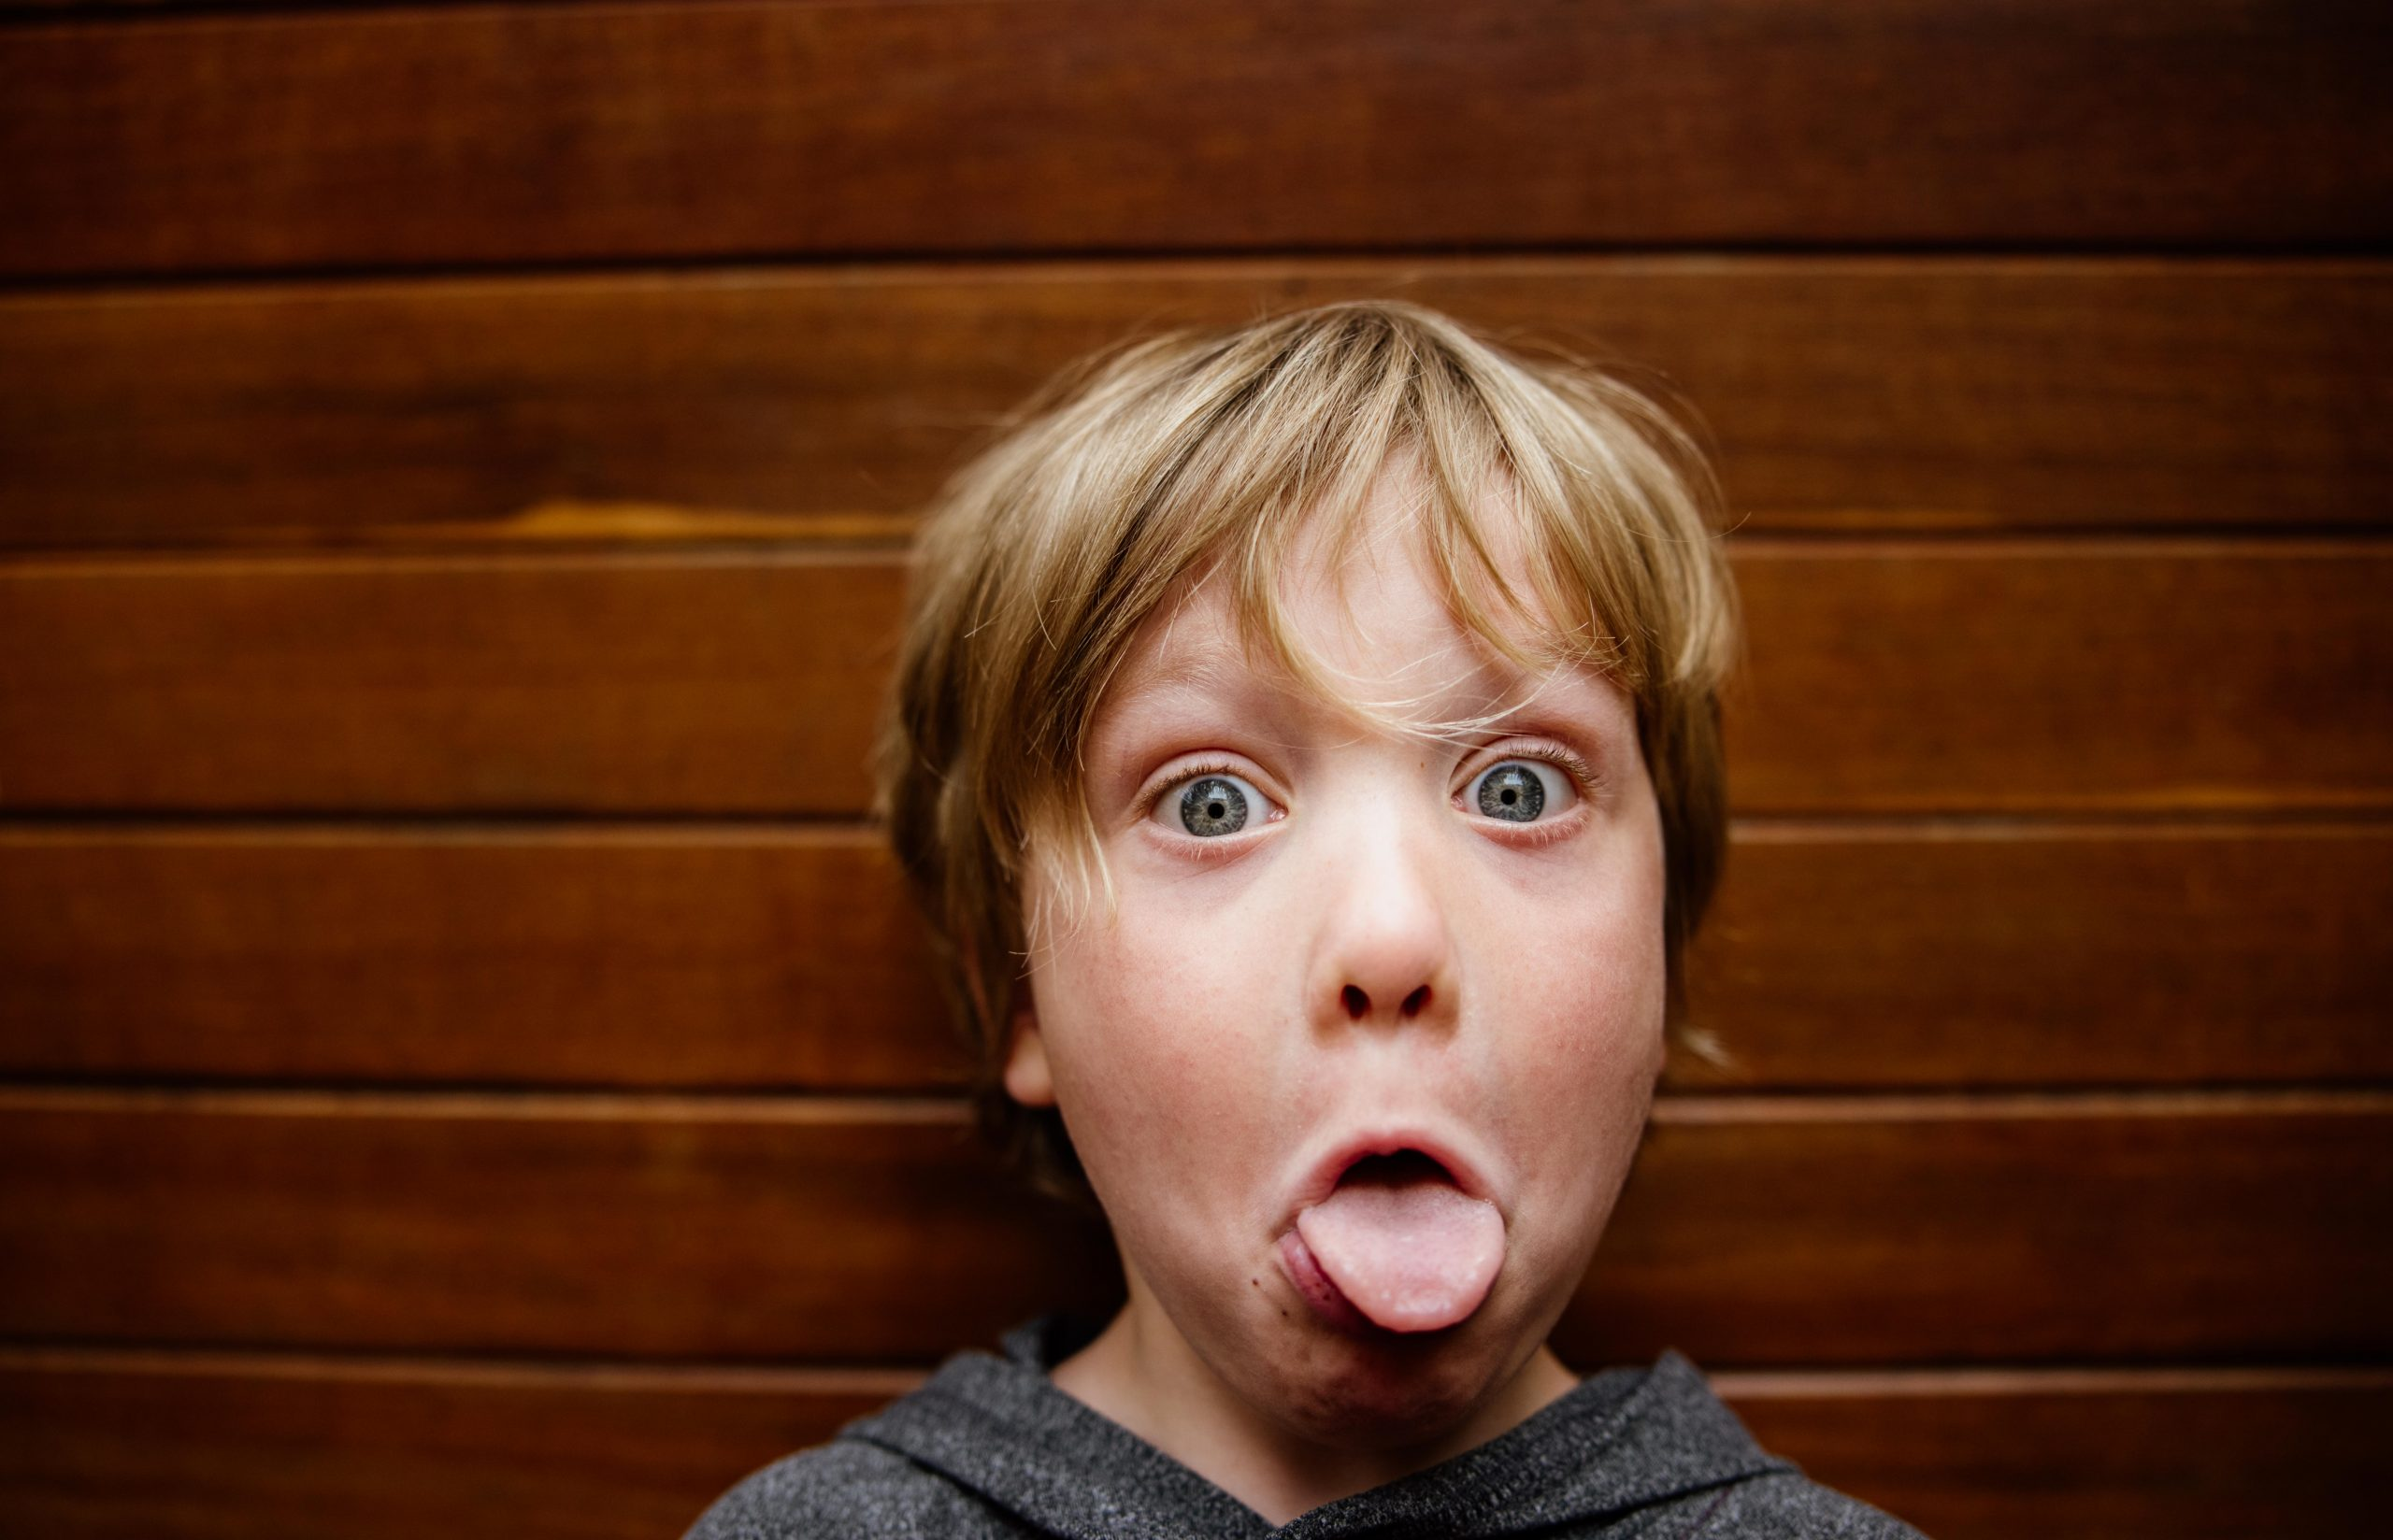 kid making funny face